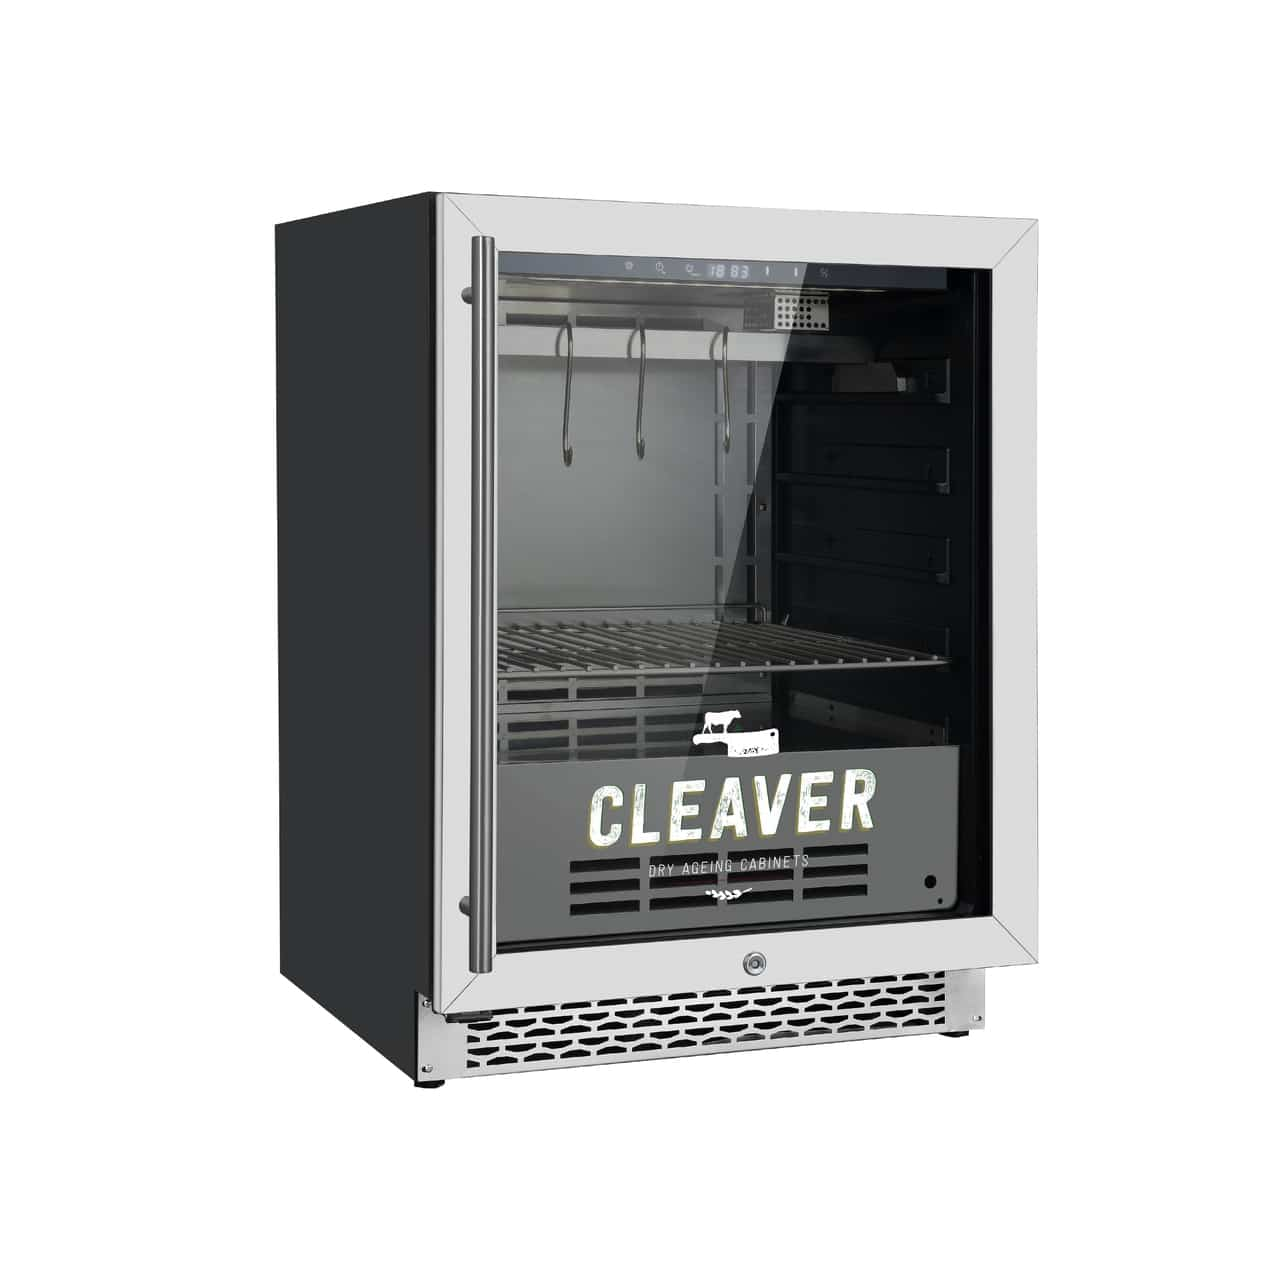 products CLEAVER Dry Ageing Cabinets2  31657.1566795915.1280.1280